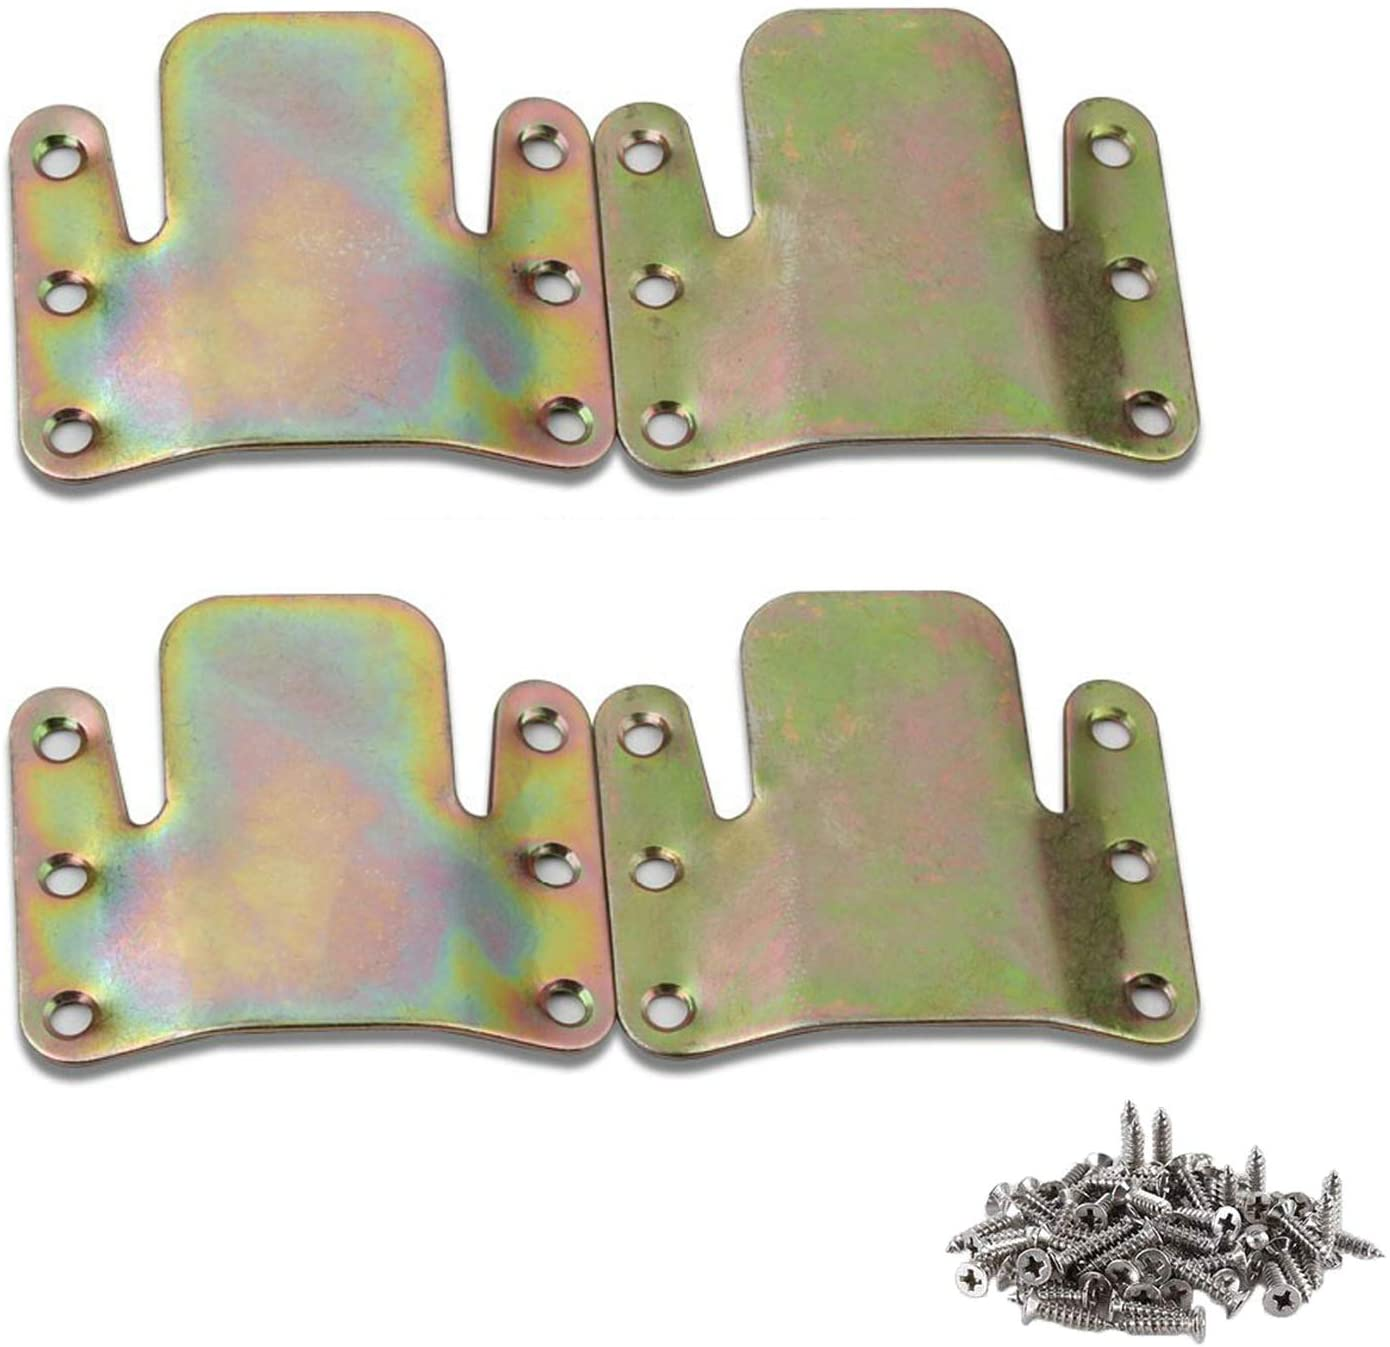 Gizhome 4 Pack/2 Pairs Universal Sectional Connector Brackets, Non Sliding Sofa Fastener for Sectionals Pieces, ColorZinc-Plated